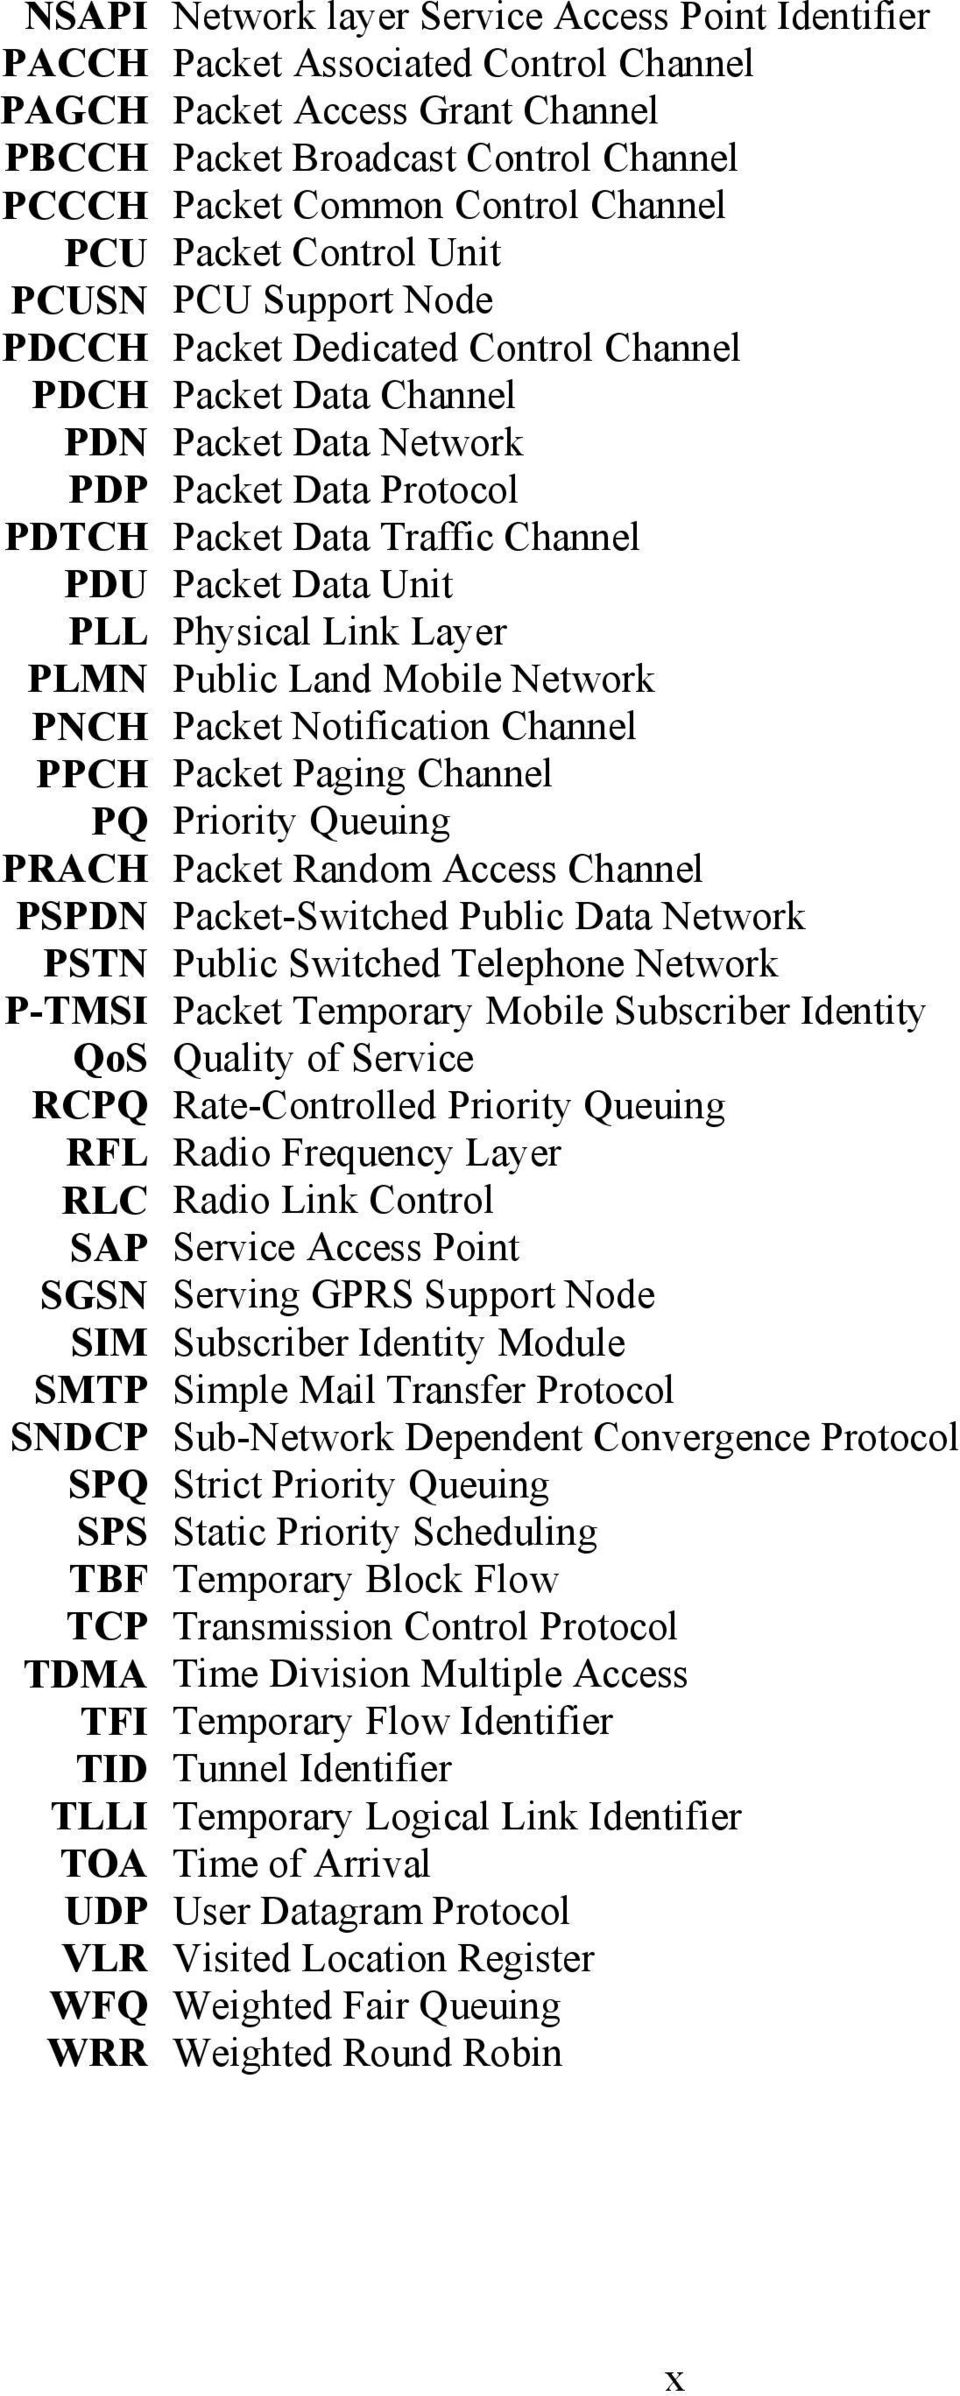 Channel PDU Packet Data Unit PLL Physical Link Layer PLMN Public Land Mobile Network PNCH Packet Notification Channel PPCH Packet Paging Channel PQ Priority Queuing PRACH Packet Random Access Channel